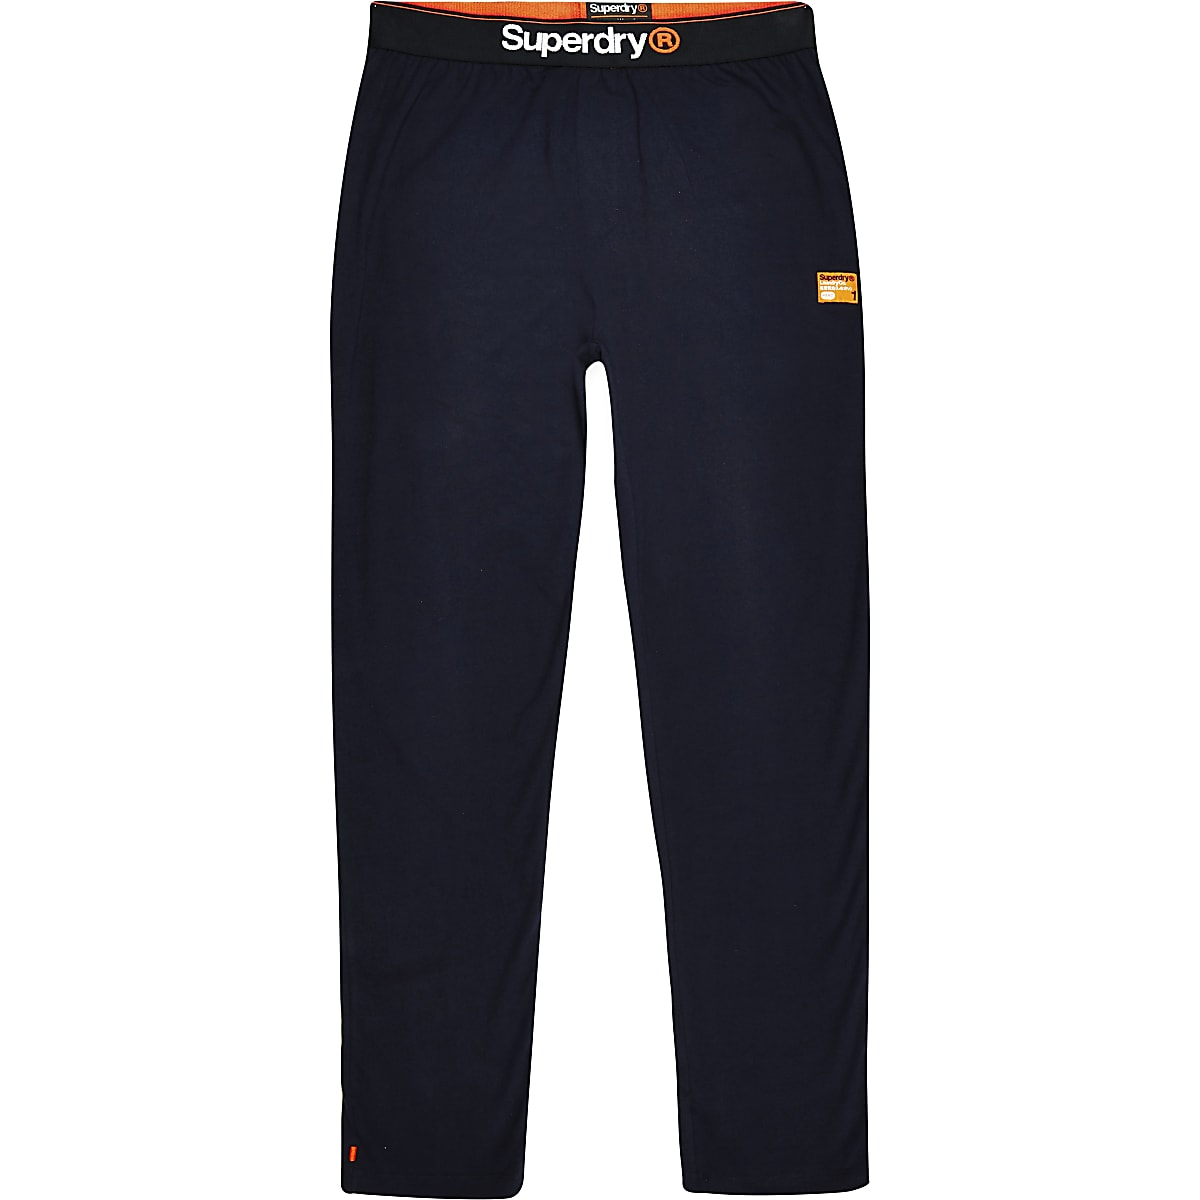 Superdry navy loungewear trousers